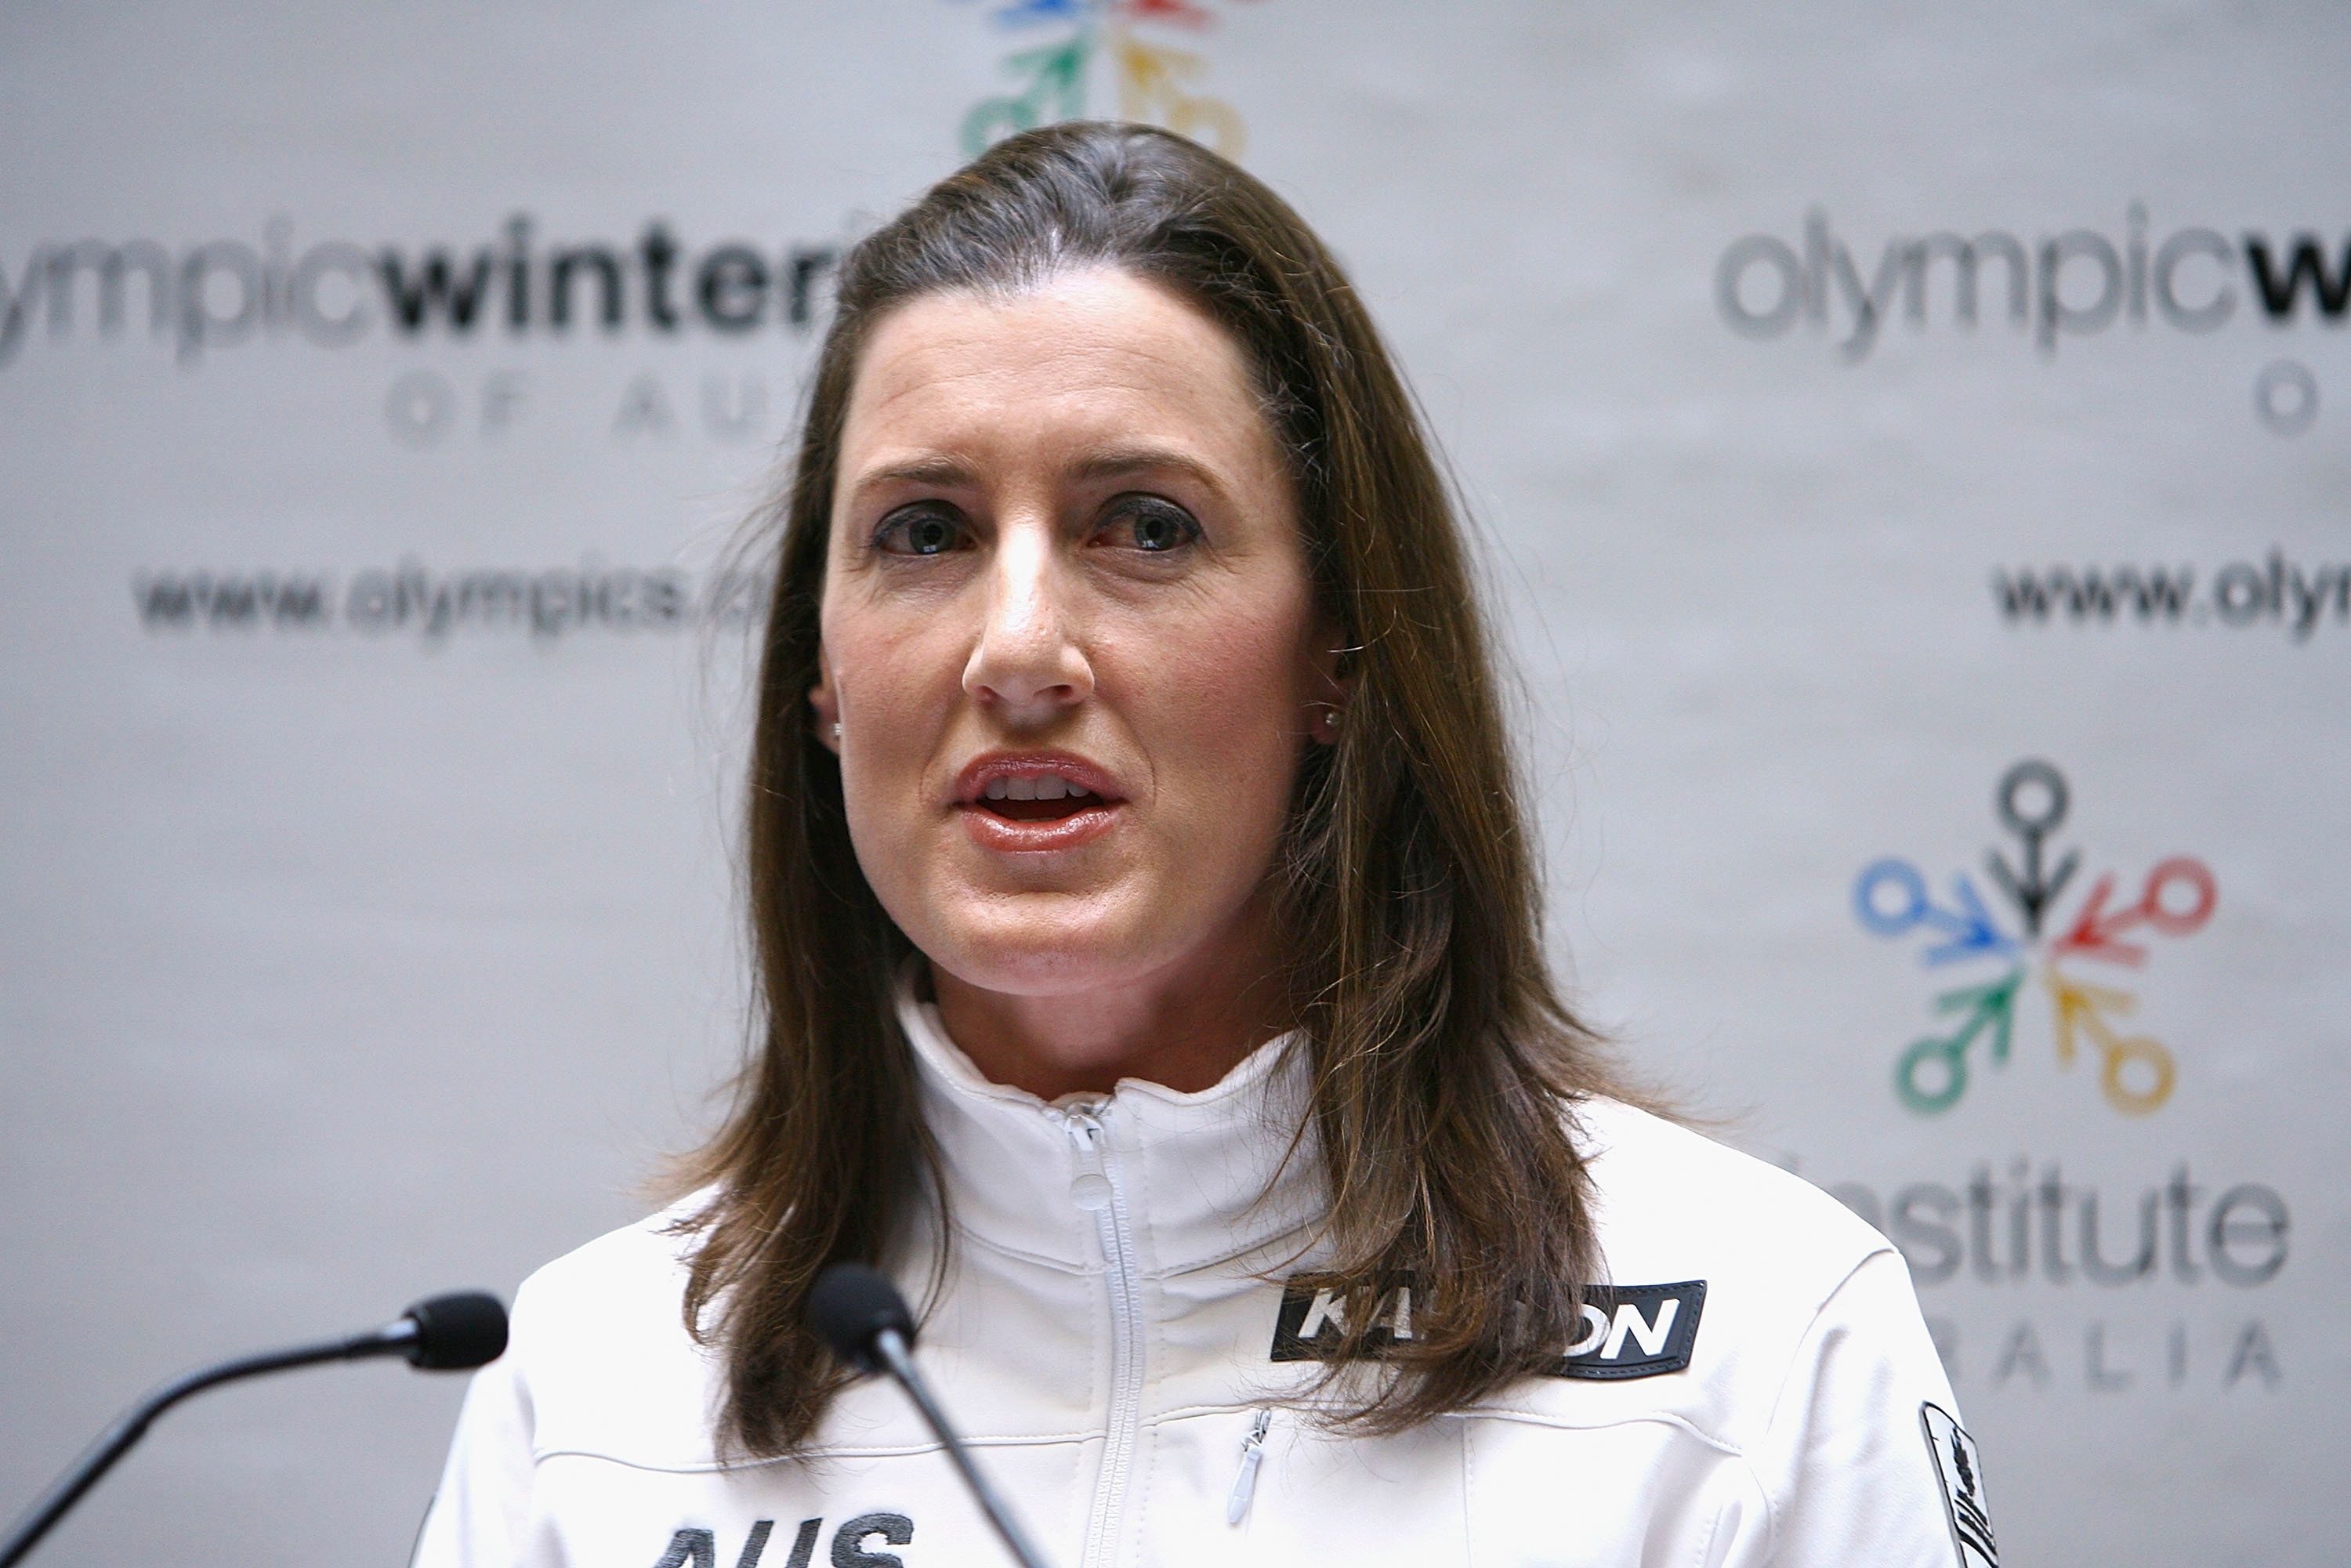 Australian TV commentator Jacqui Cooper defendedremarks she made at the Winter Olympics in Pyeongchang, South Korea.